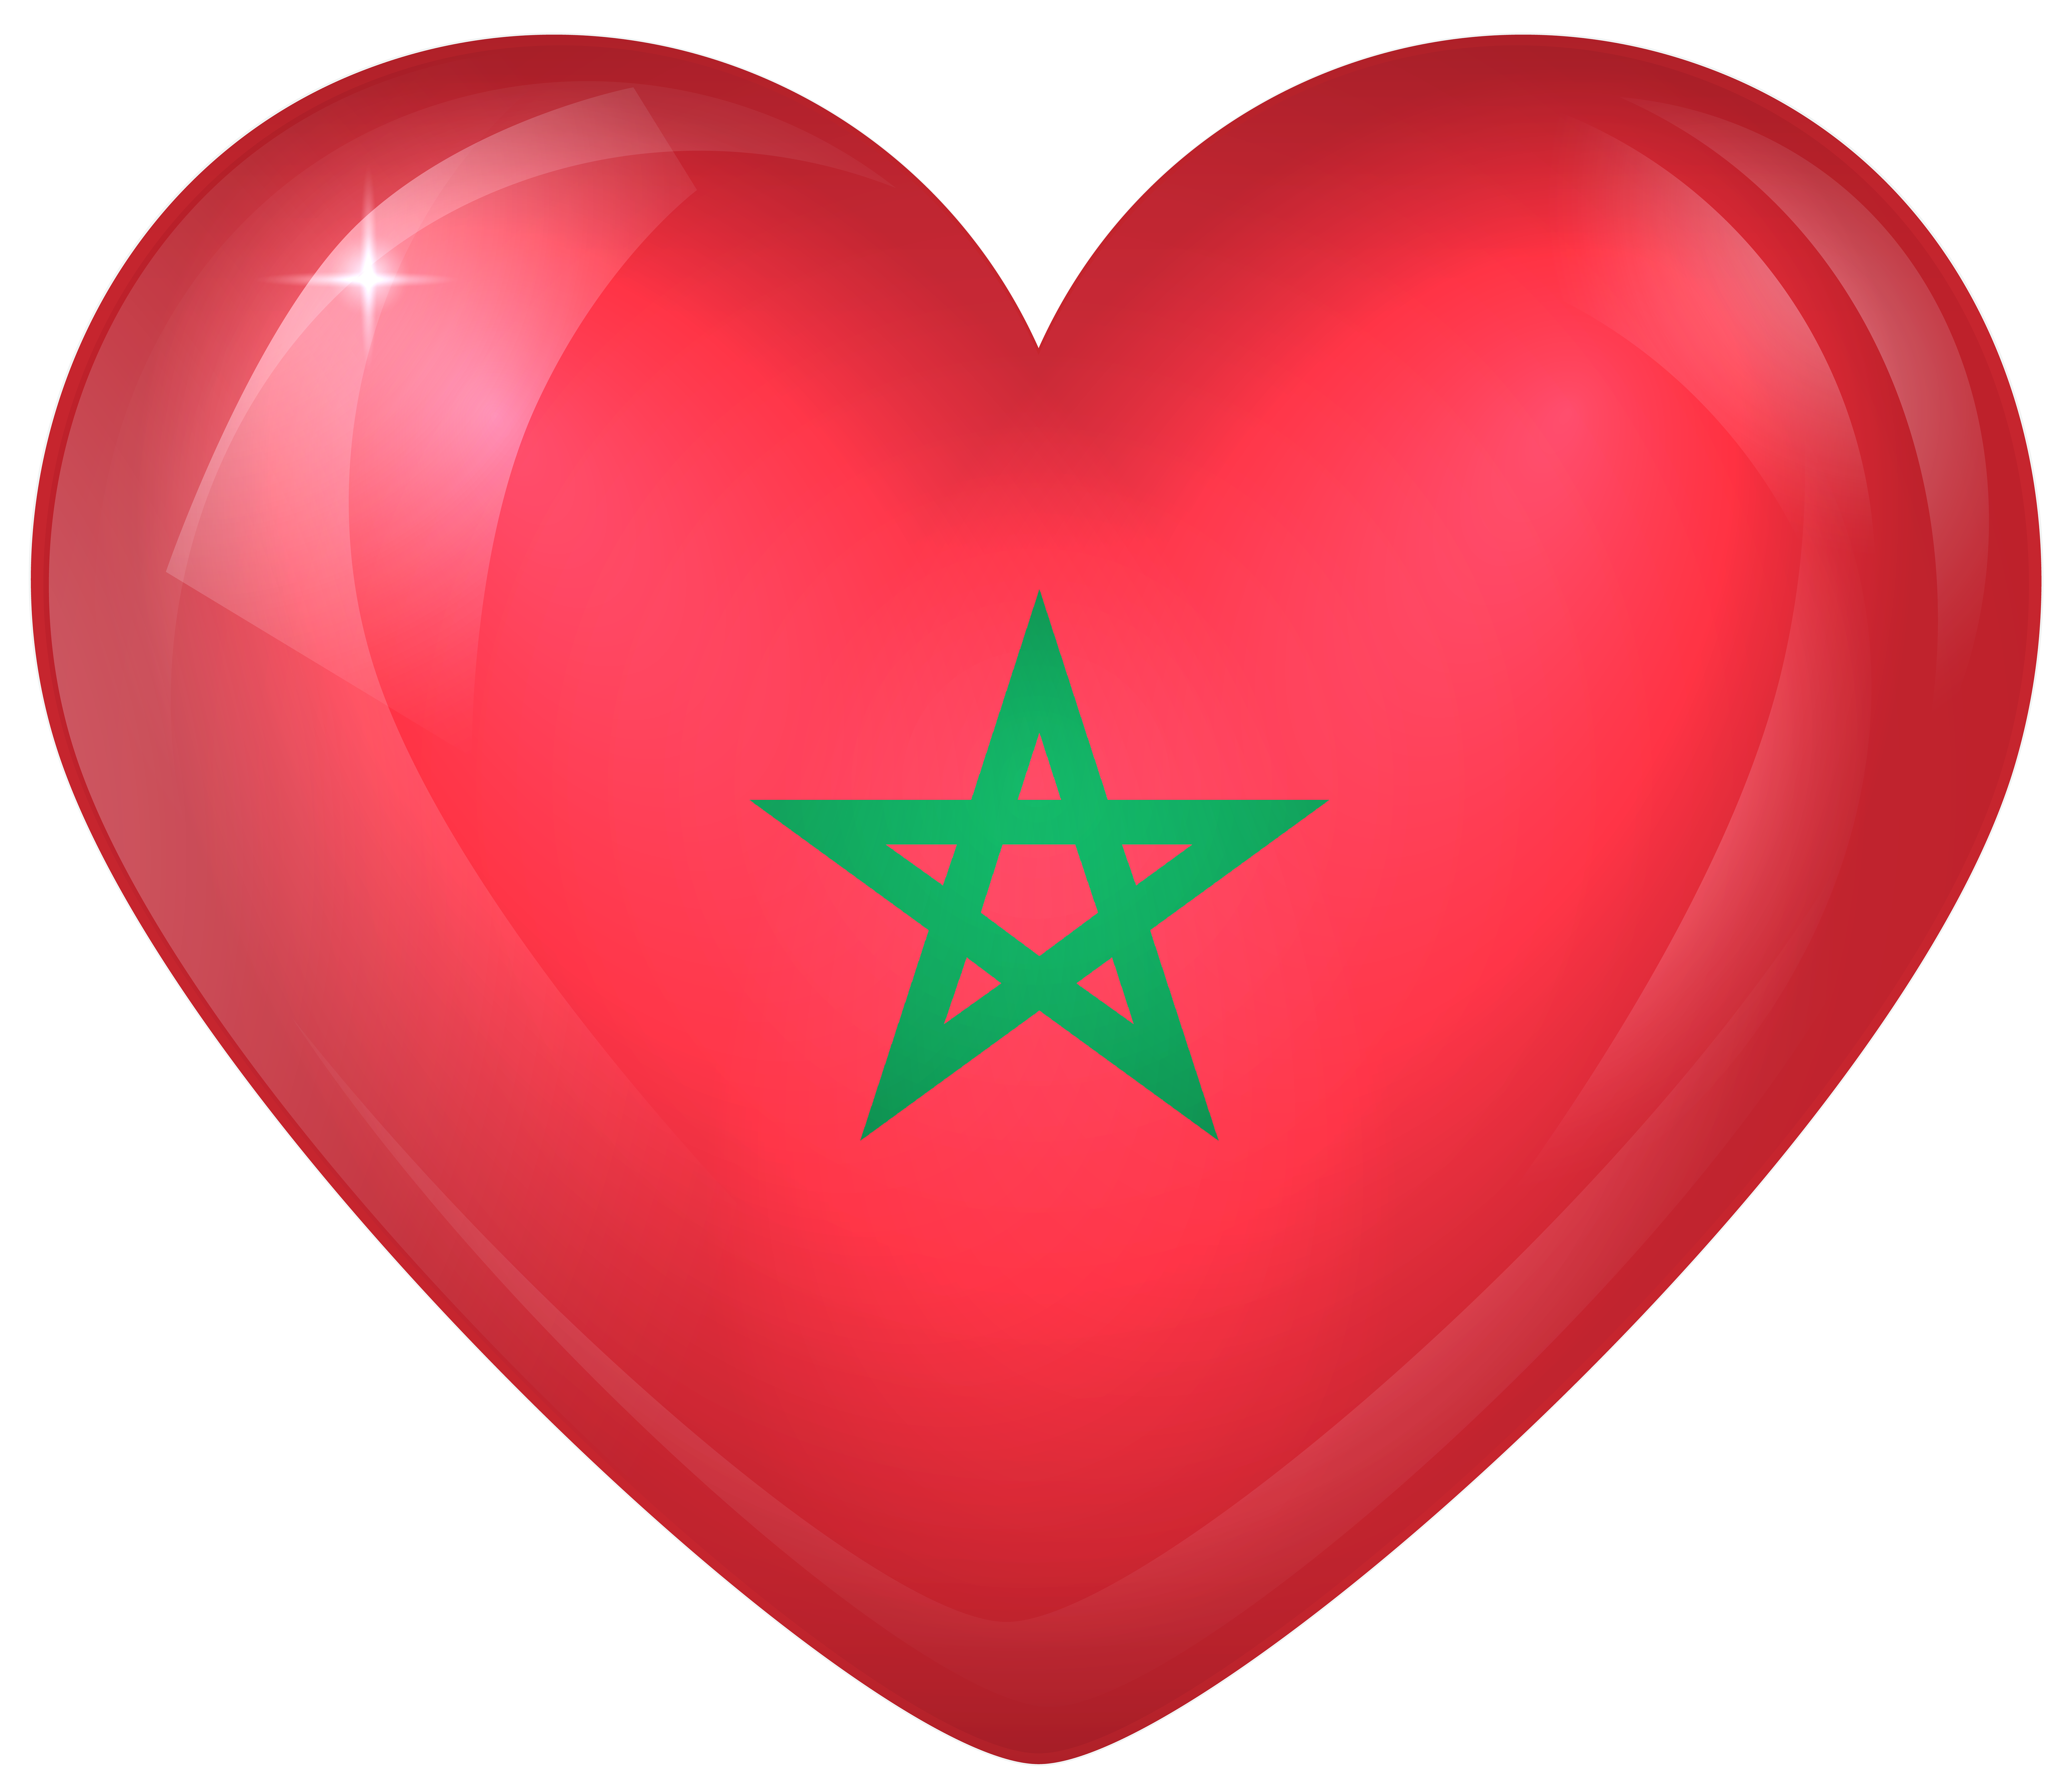 Striped heart clipart graphic free download Morocco Large Heart Flag | Gallery Yopriceville - High-Quality ... graphic free download